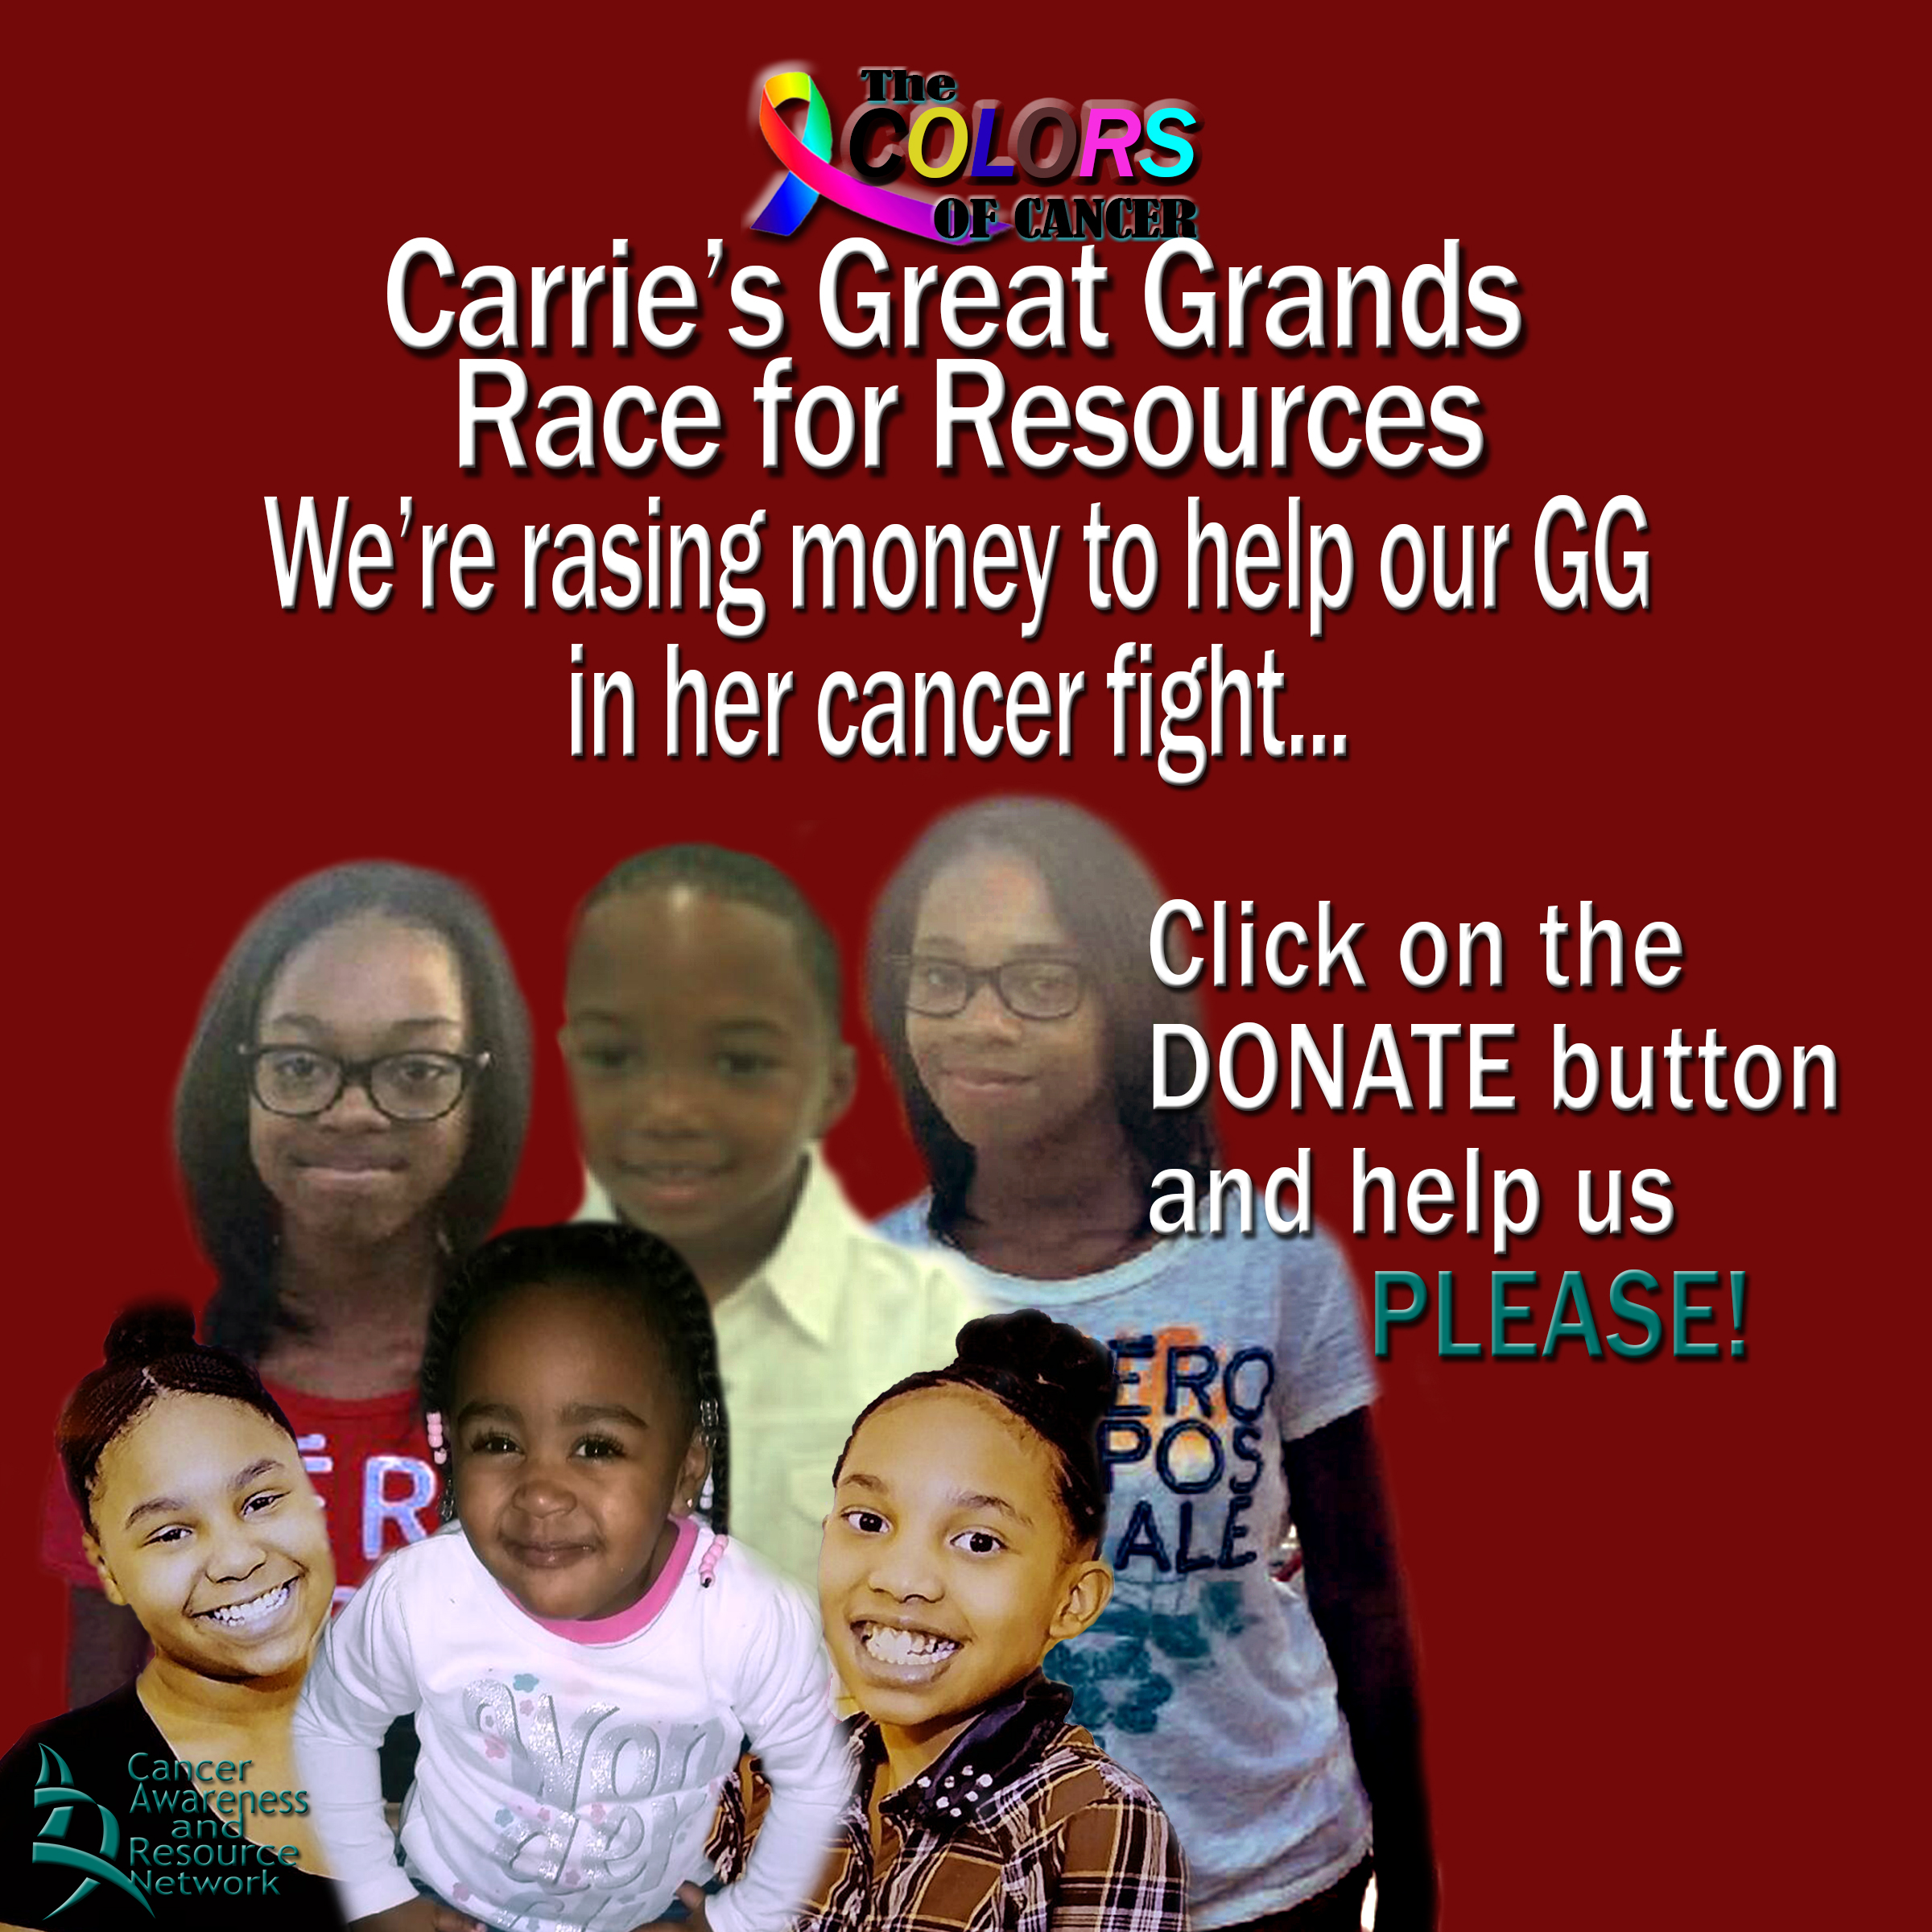 Cancer Awareness and Resource's Photo